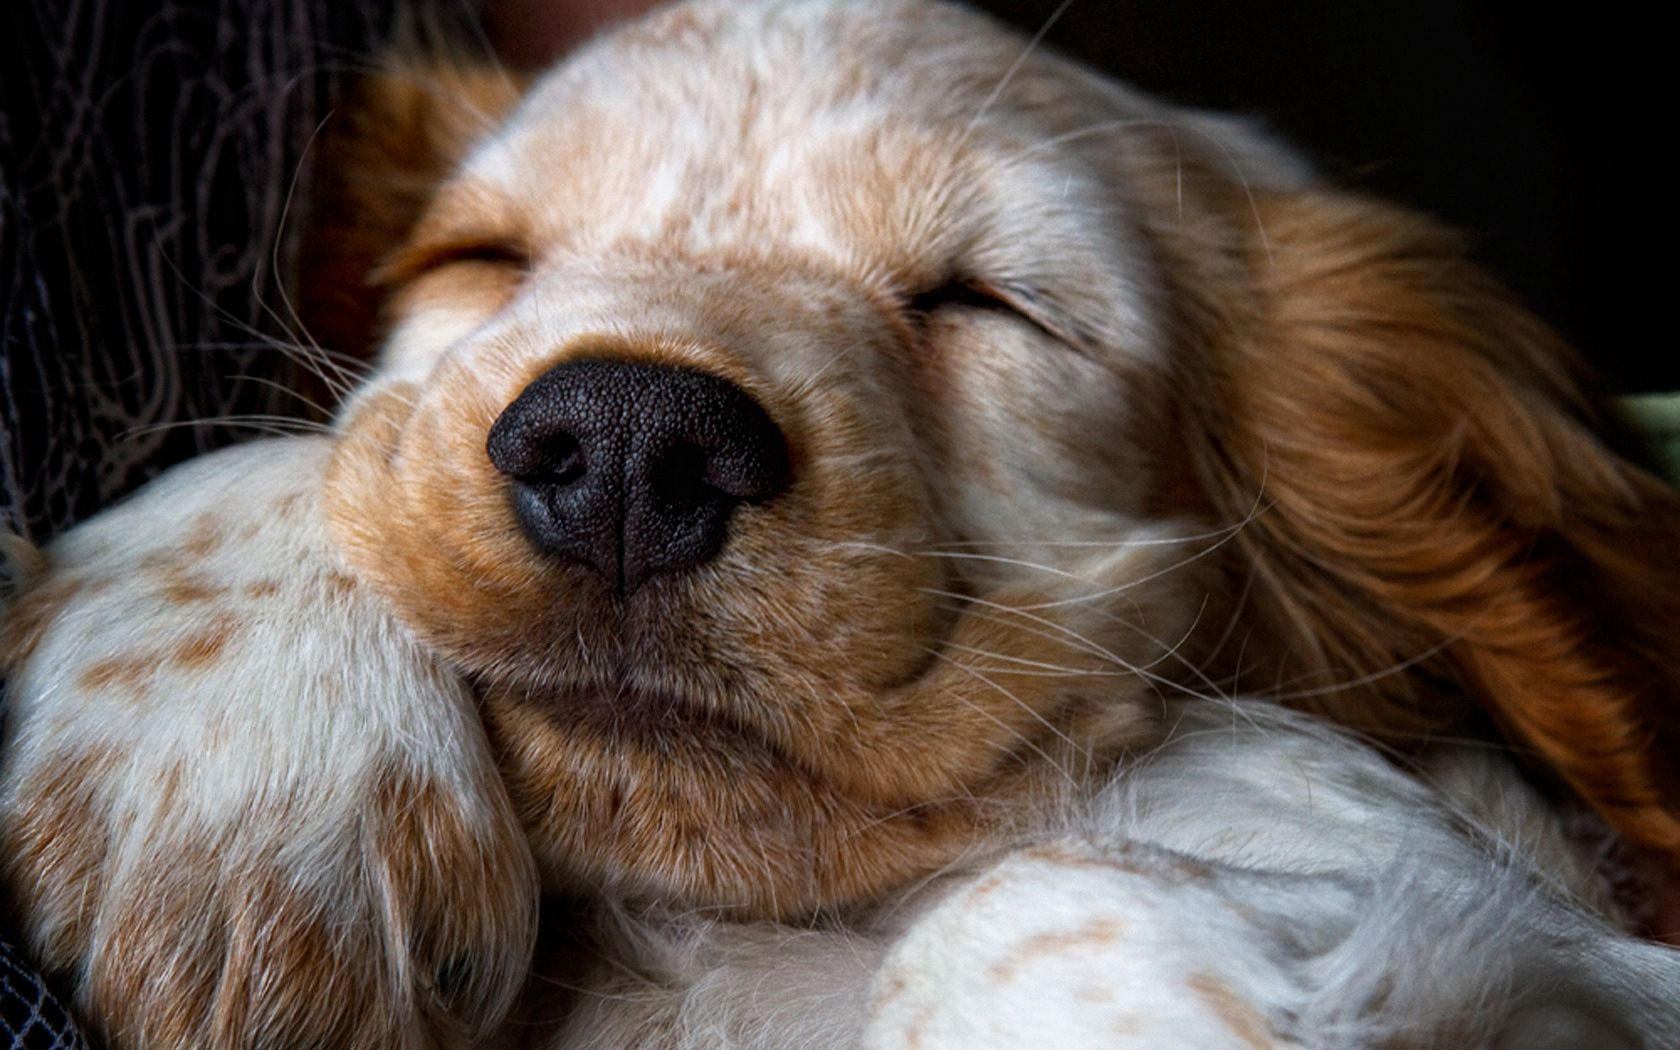 99540 Screensavers and Wallpapers Nose for phone. Download Animals, Muzzle, Puppy, Sleep, Dream, Nose pictures for free